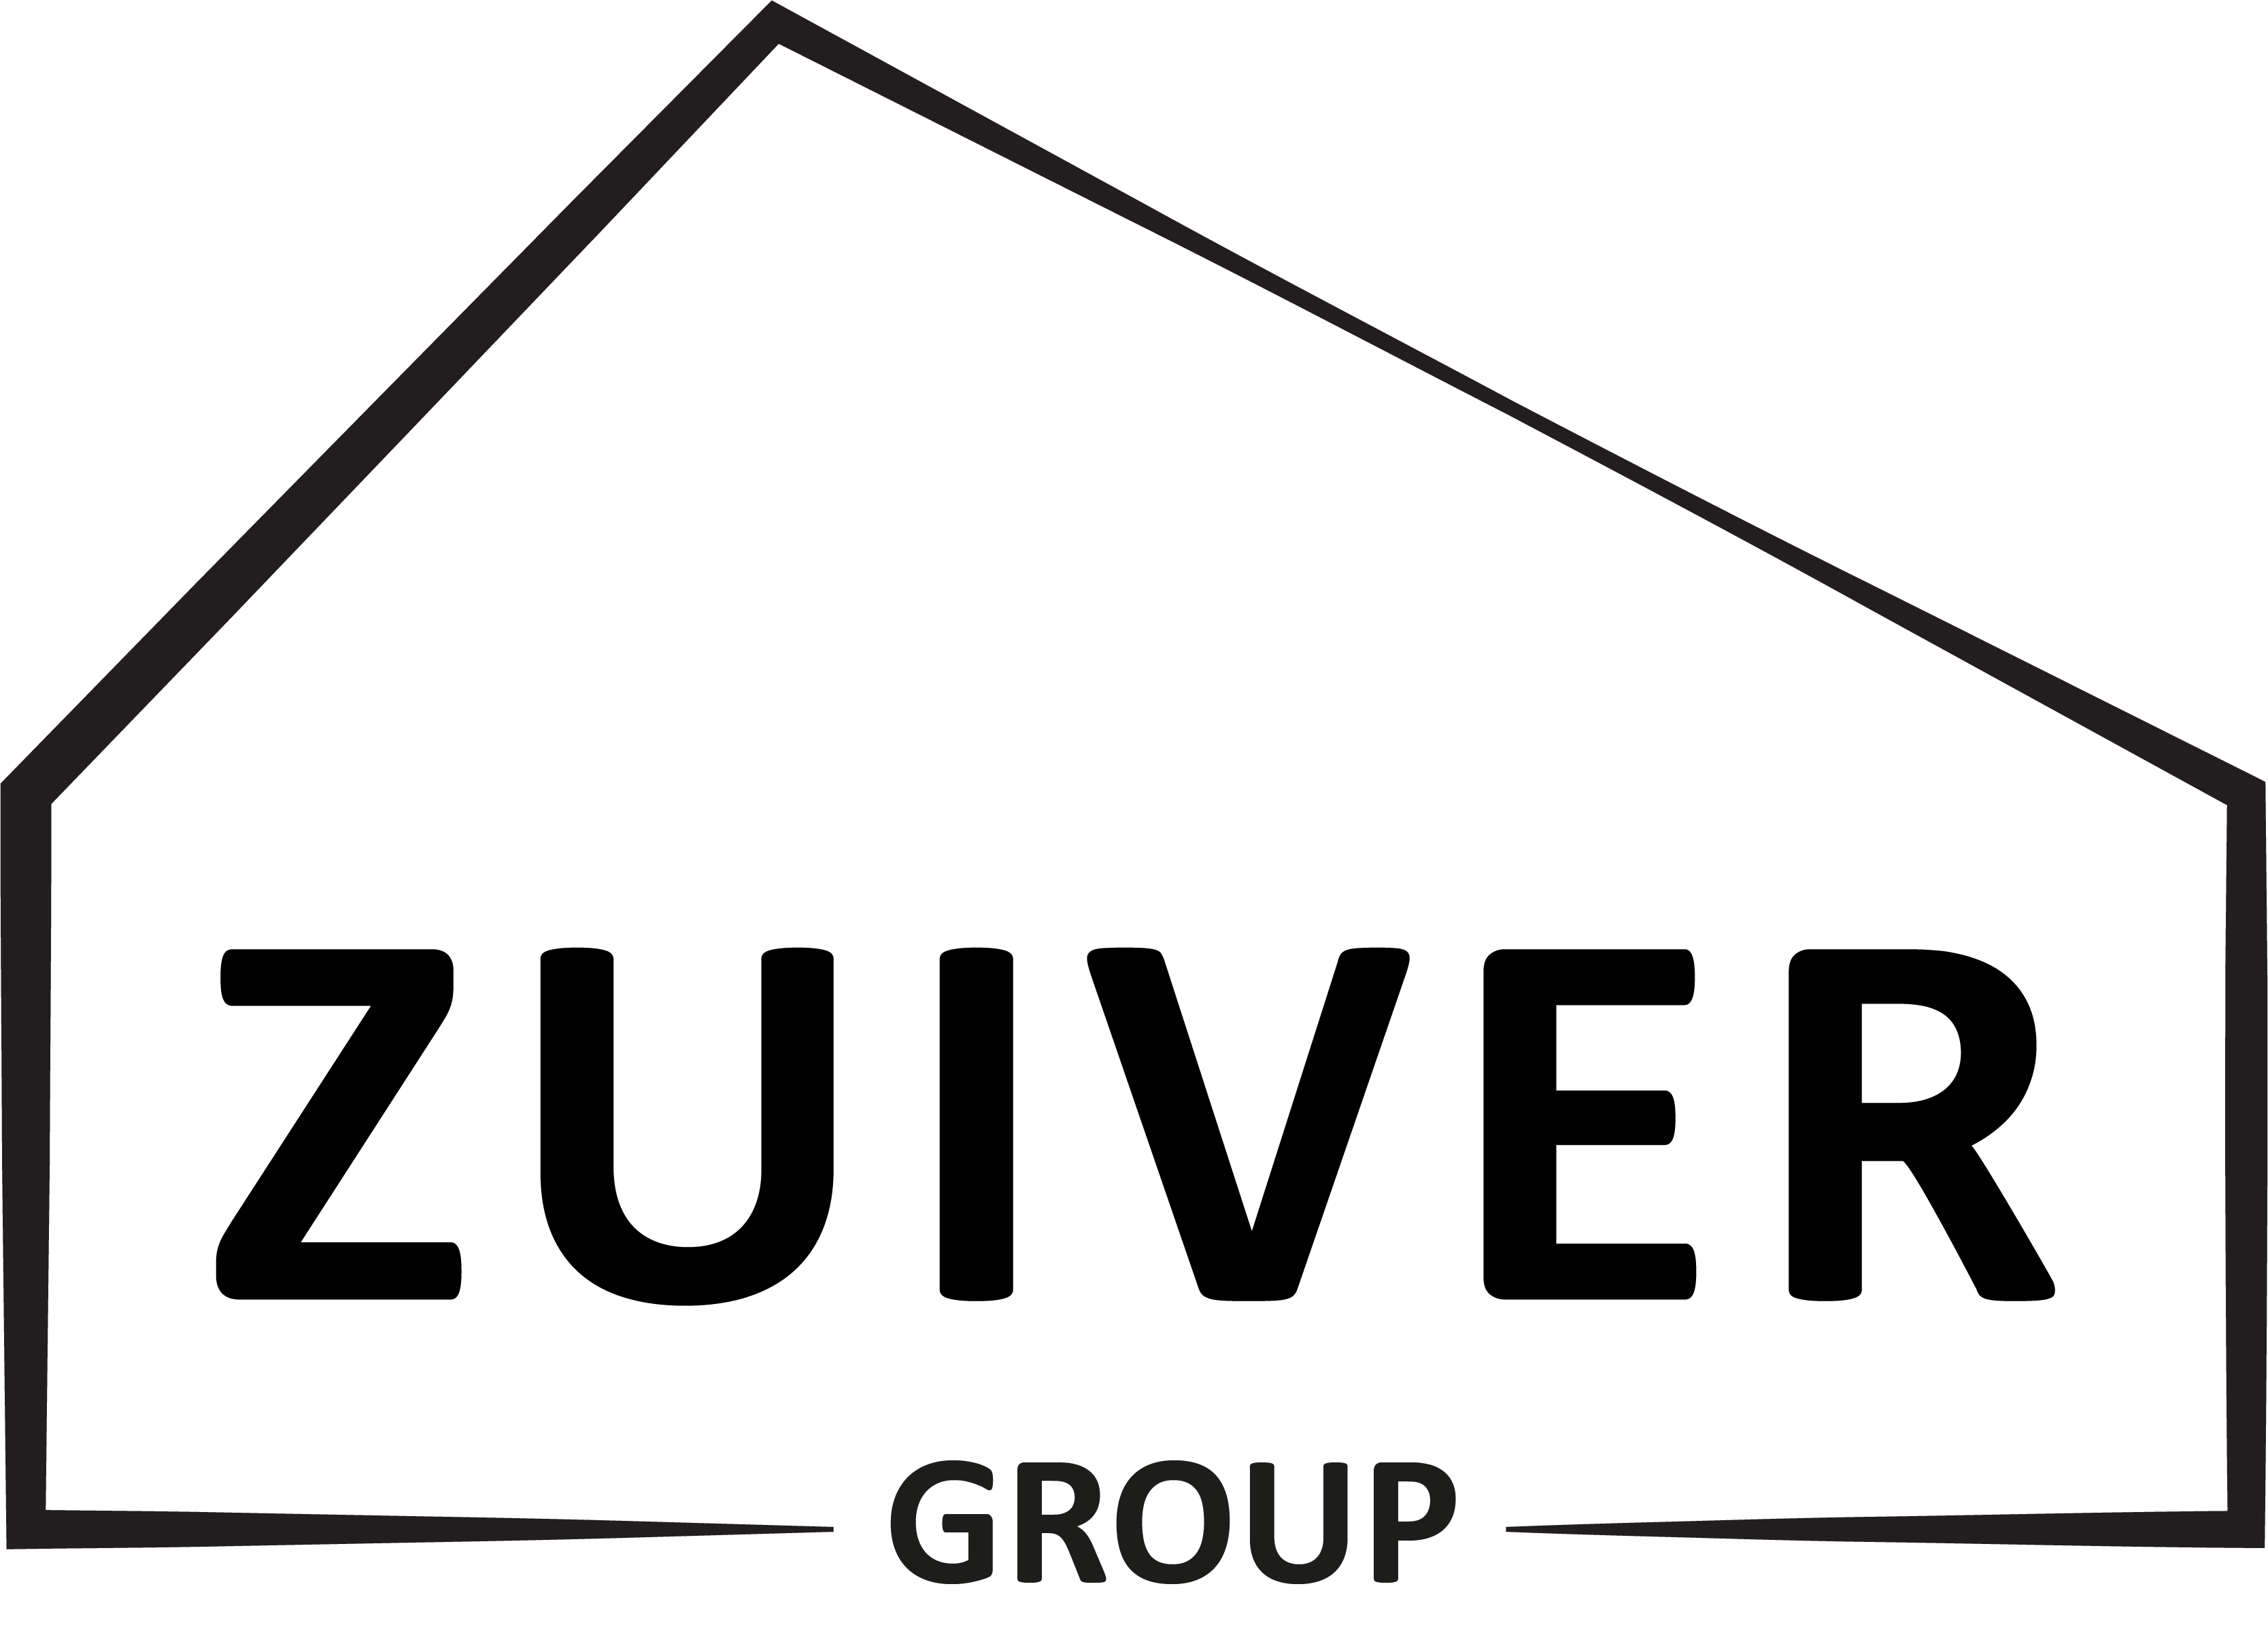 Brand icon Zuiver Group